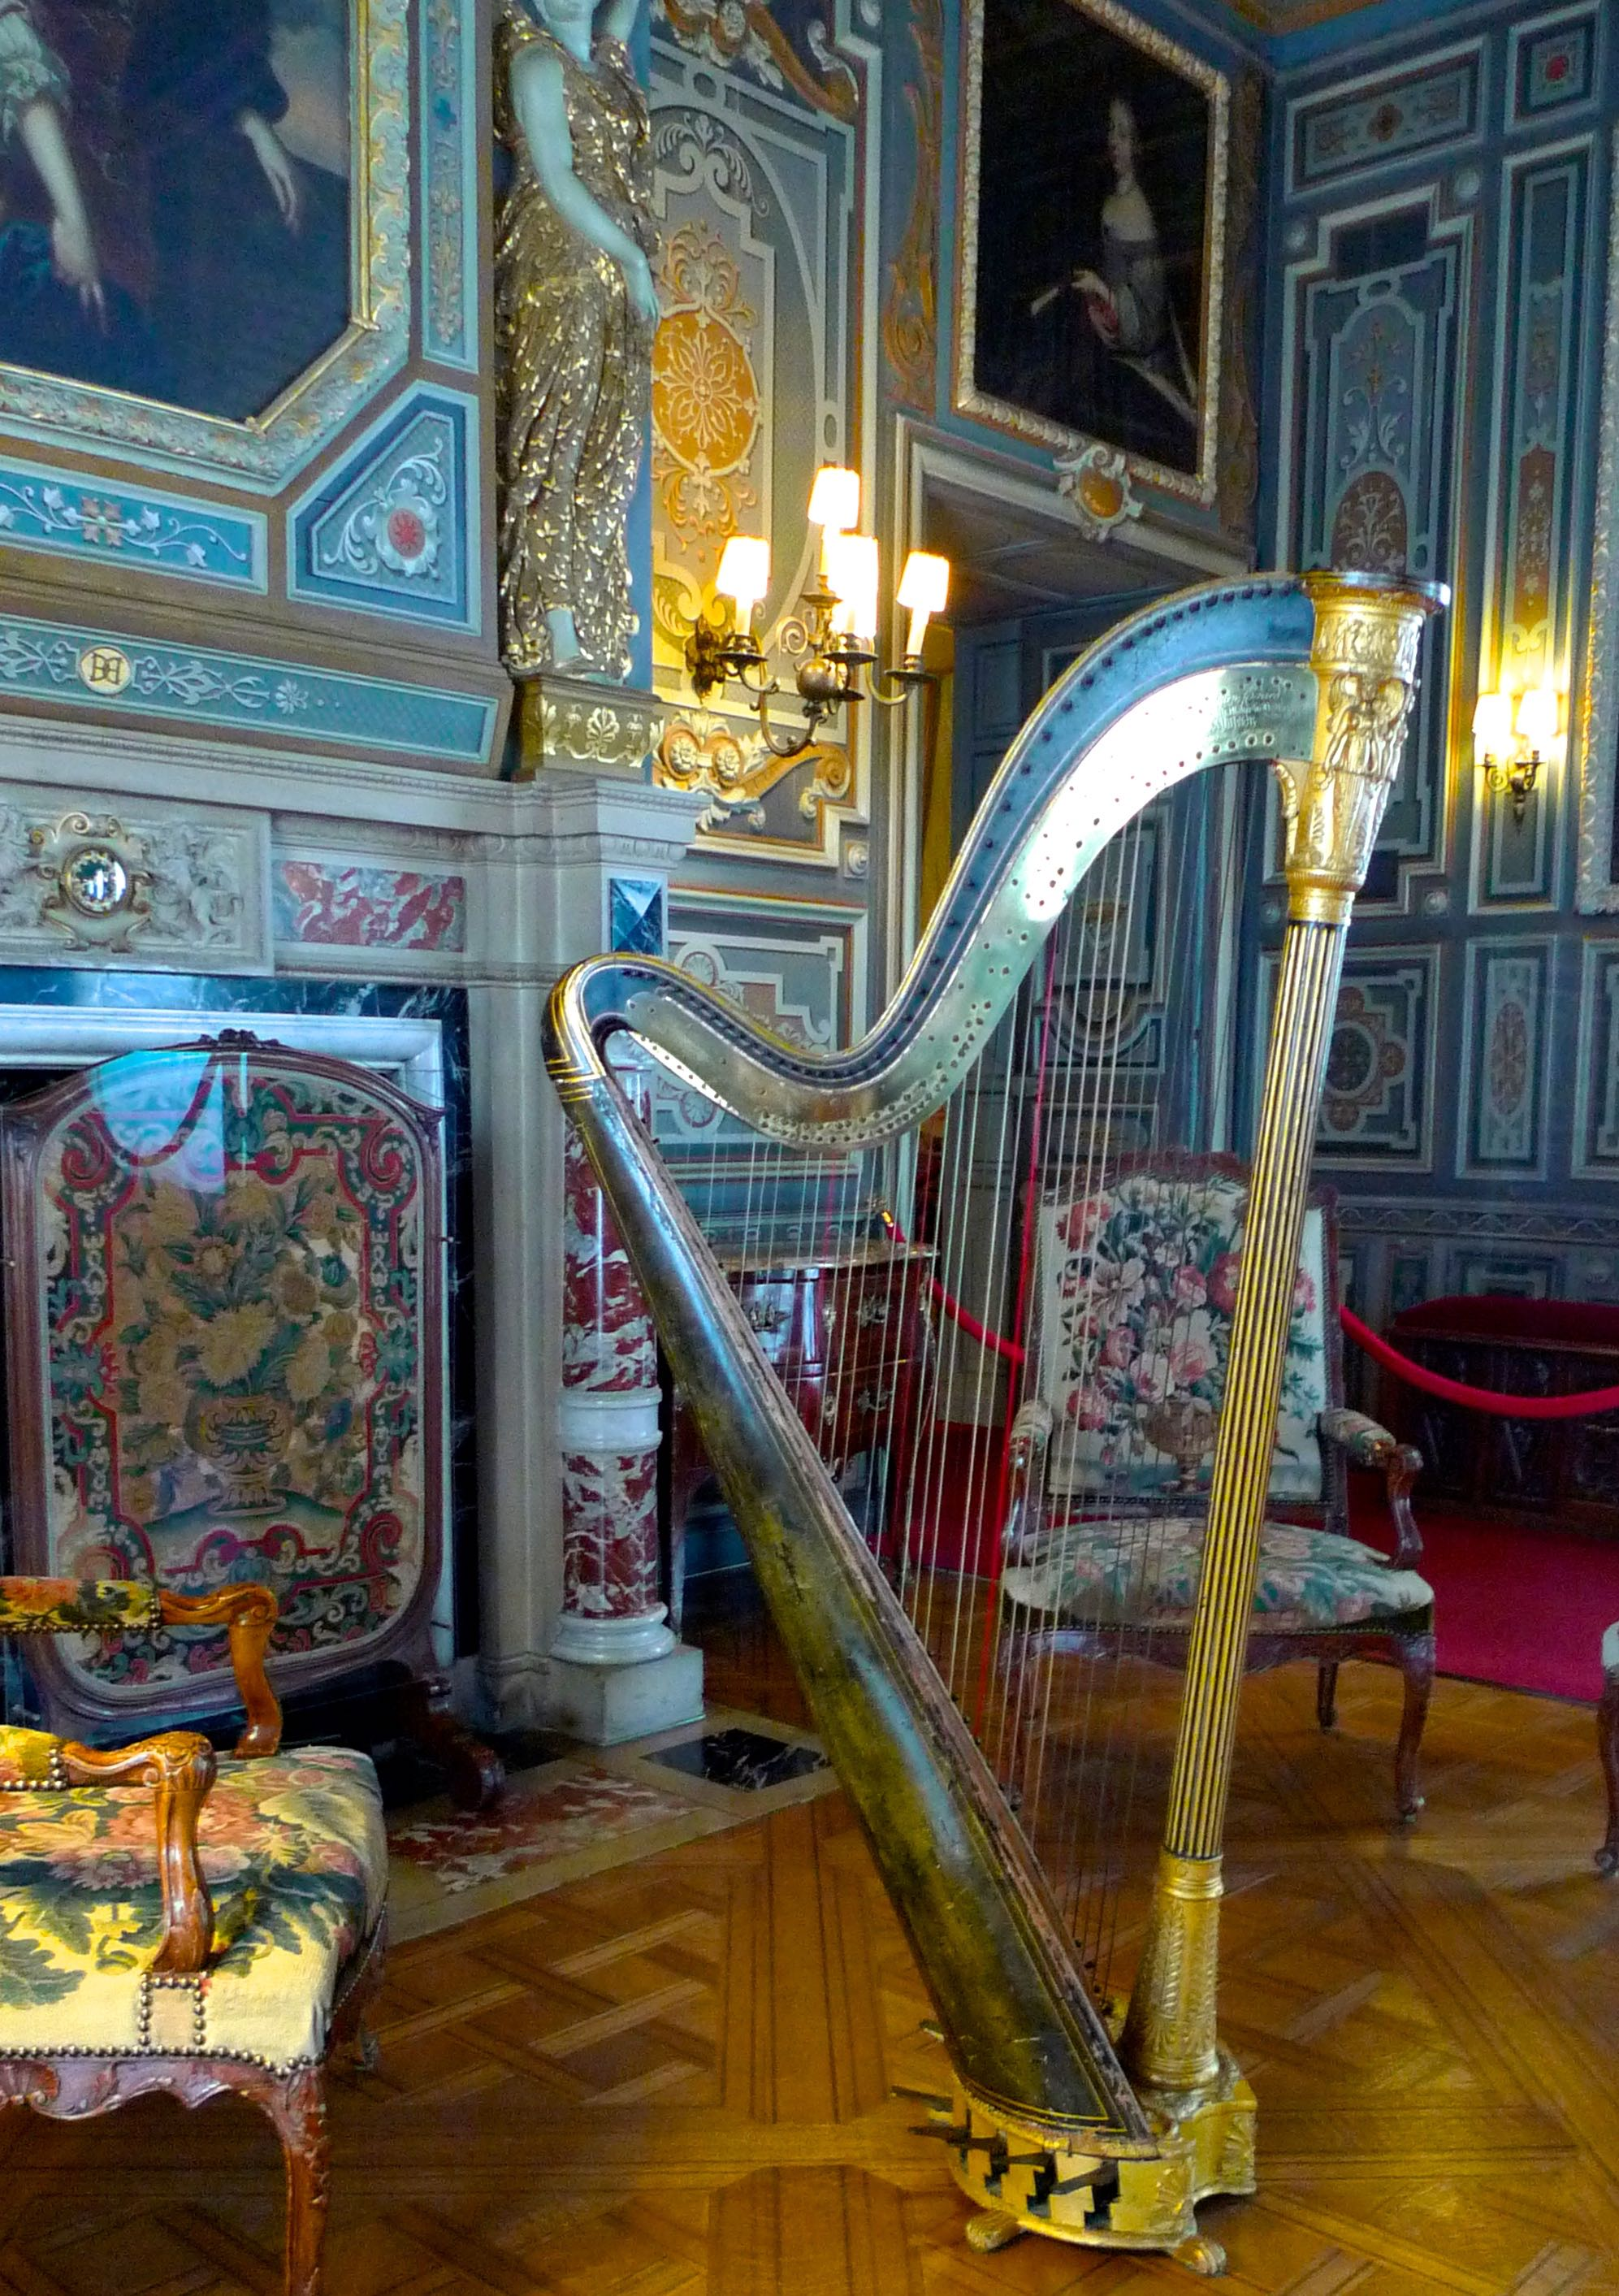 Opulence galore and with a harp too